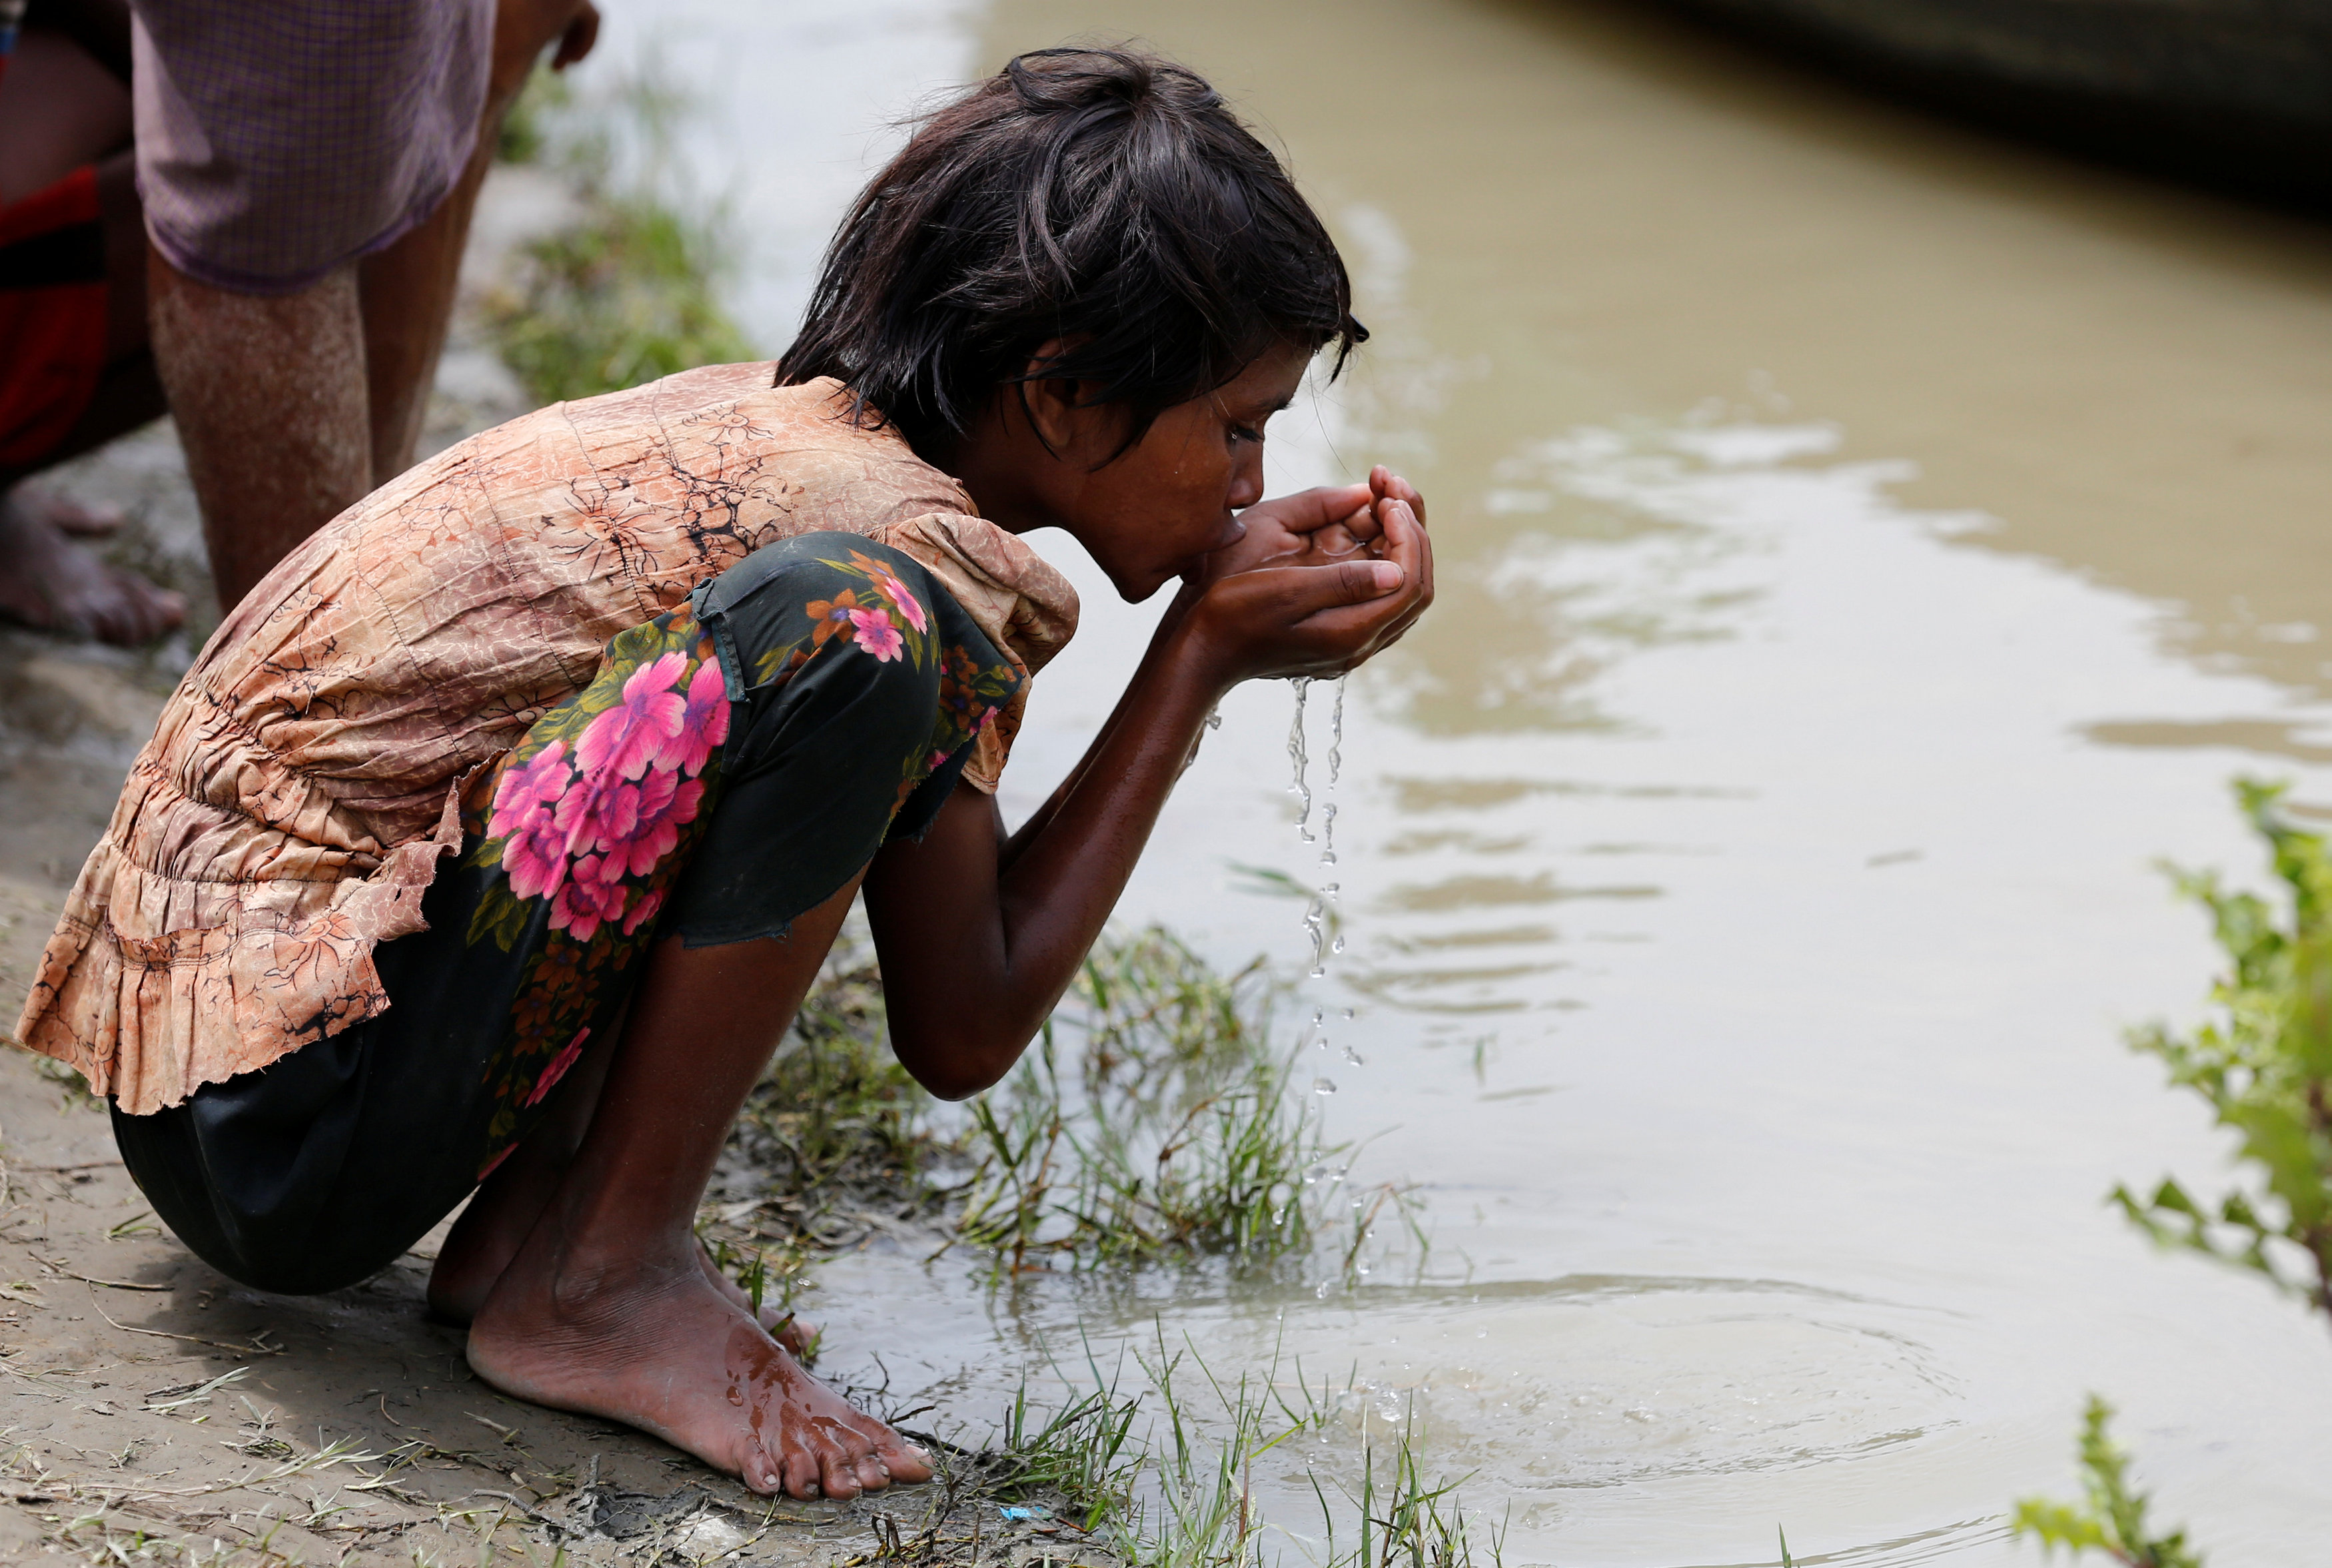 A Rohingya refugee girl drinks river water as she waits for boat to cross the border through Naf river in Maungdaw, Myanmar, September 7, 2017.REUTERS/Mohammad Ponir Hossain